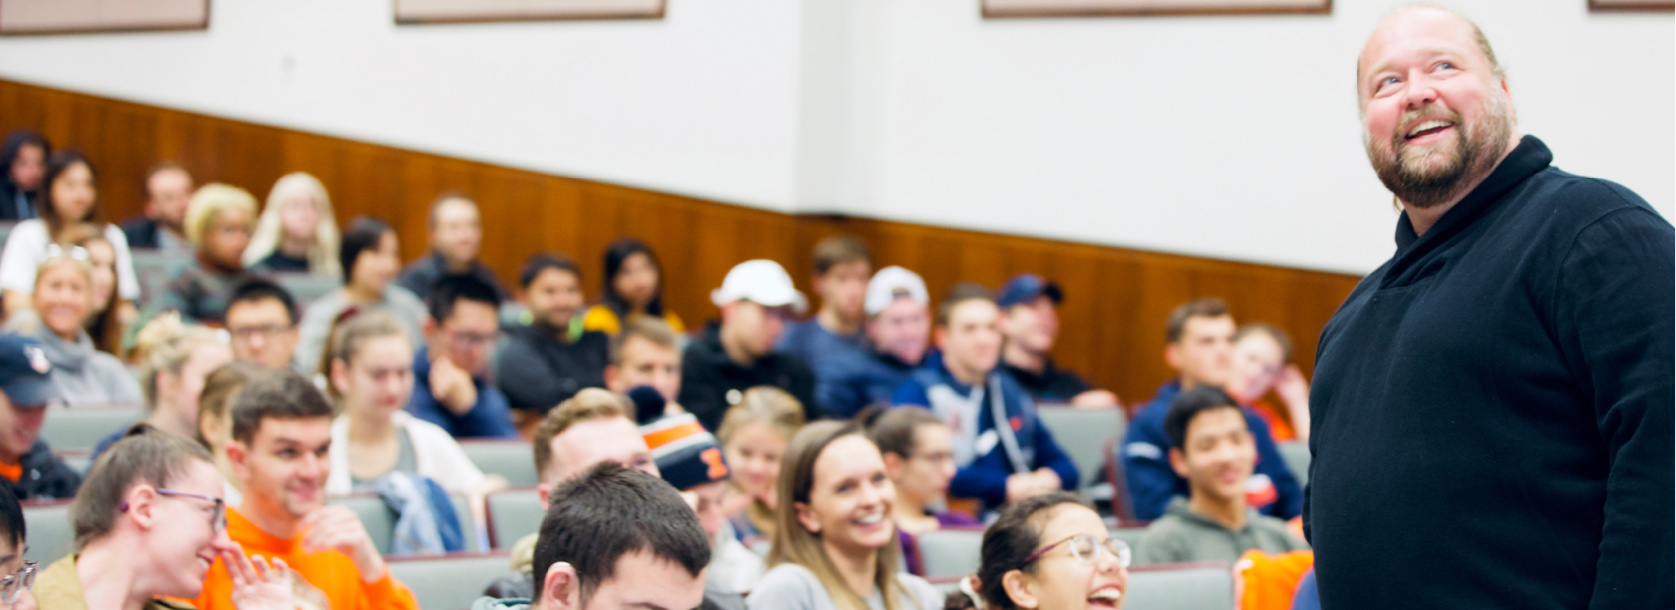 BADM Marketing Header - students attending a lecture